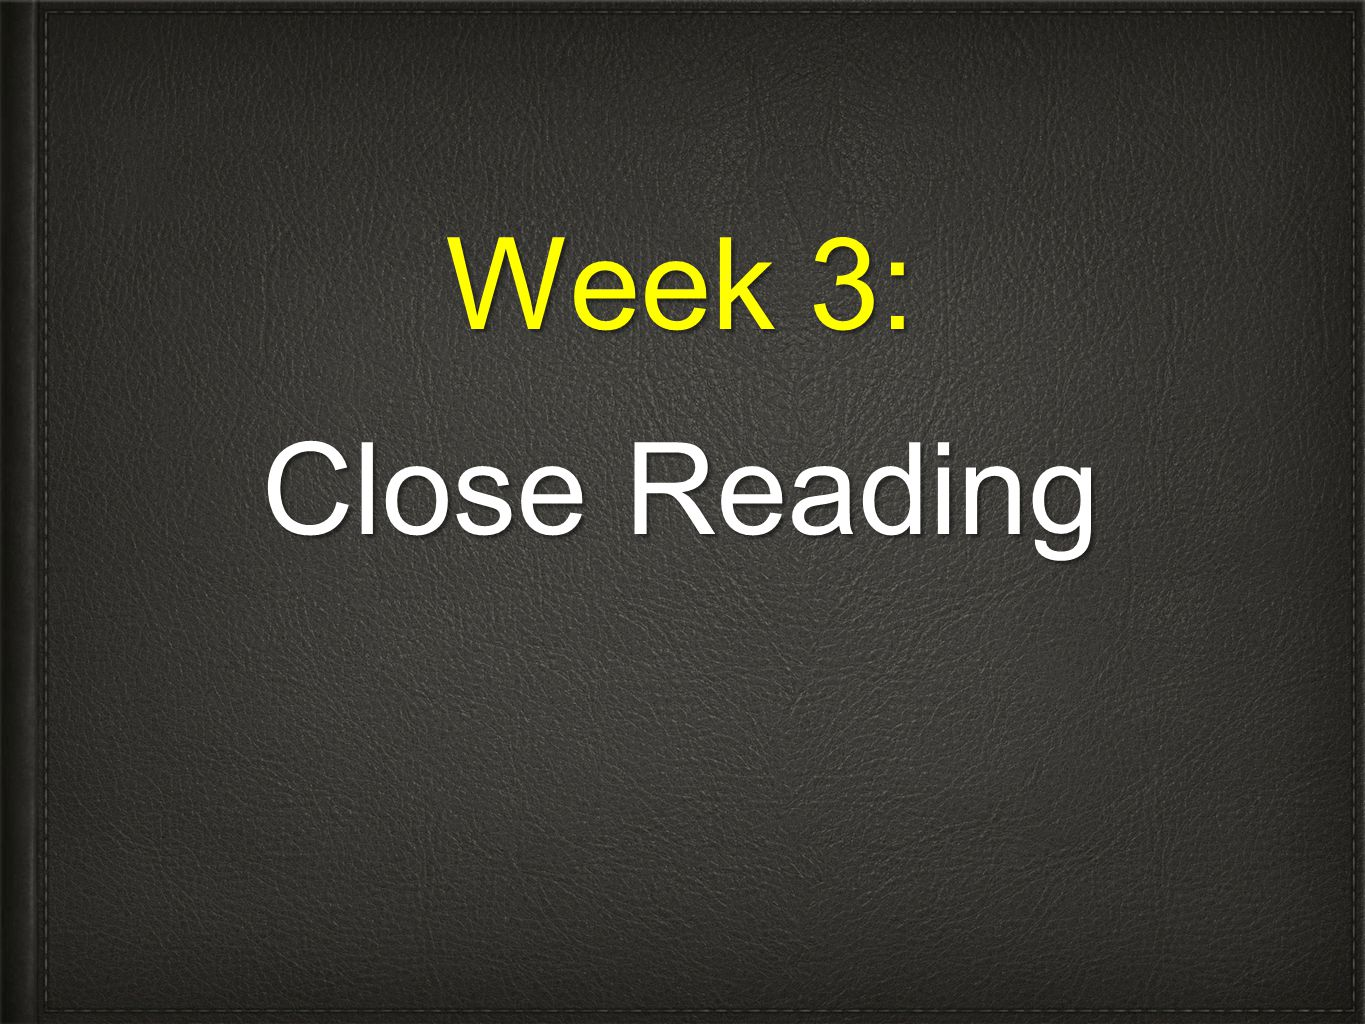 Week 3: Close Reading